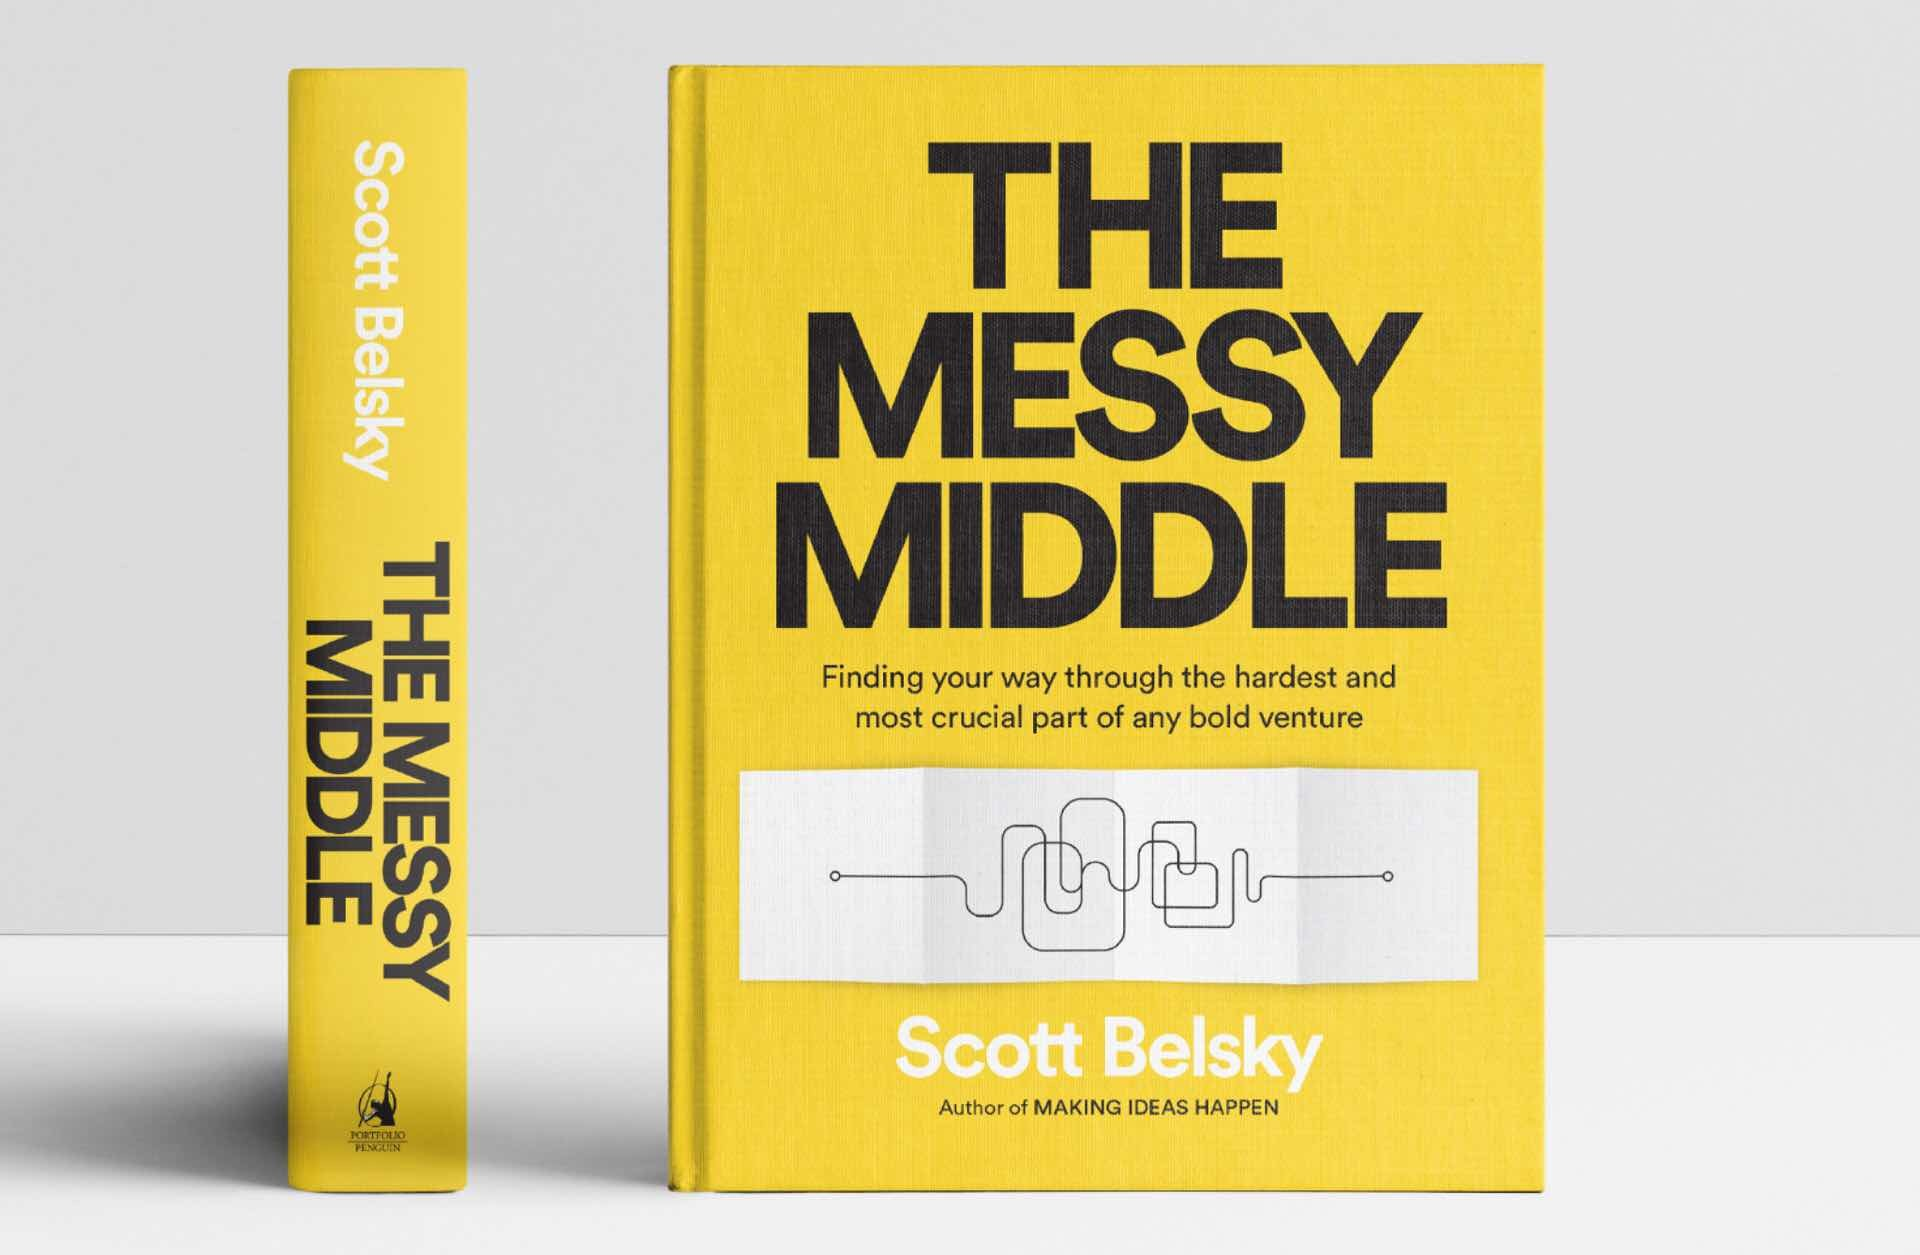 The Messy Middle by Scott Belsky.